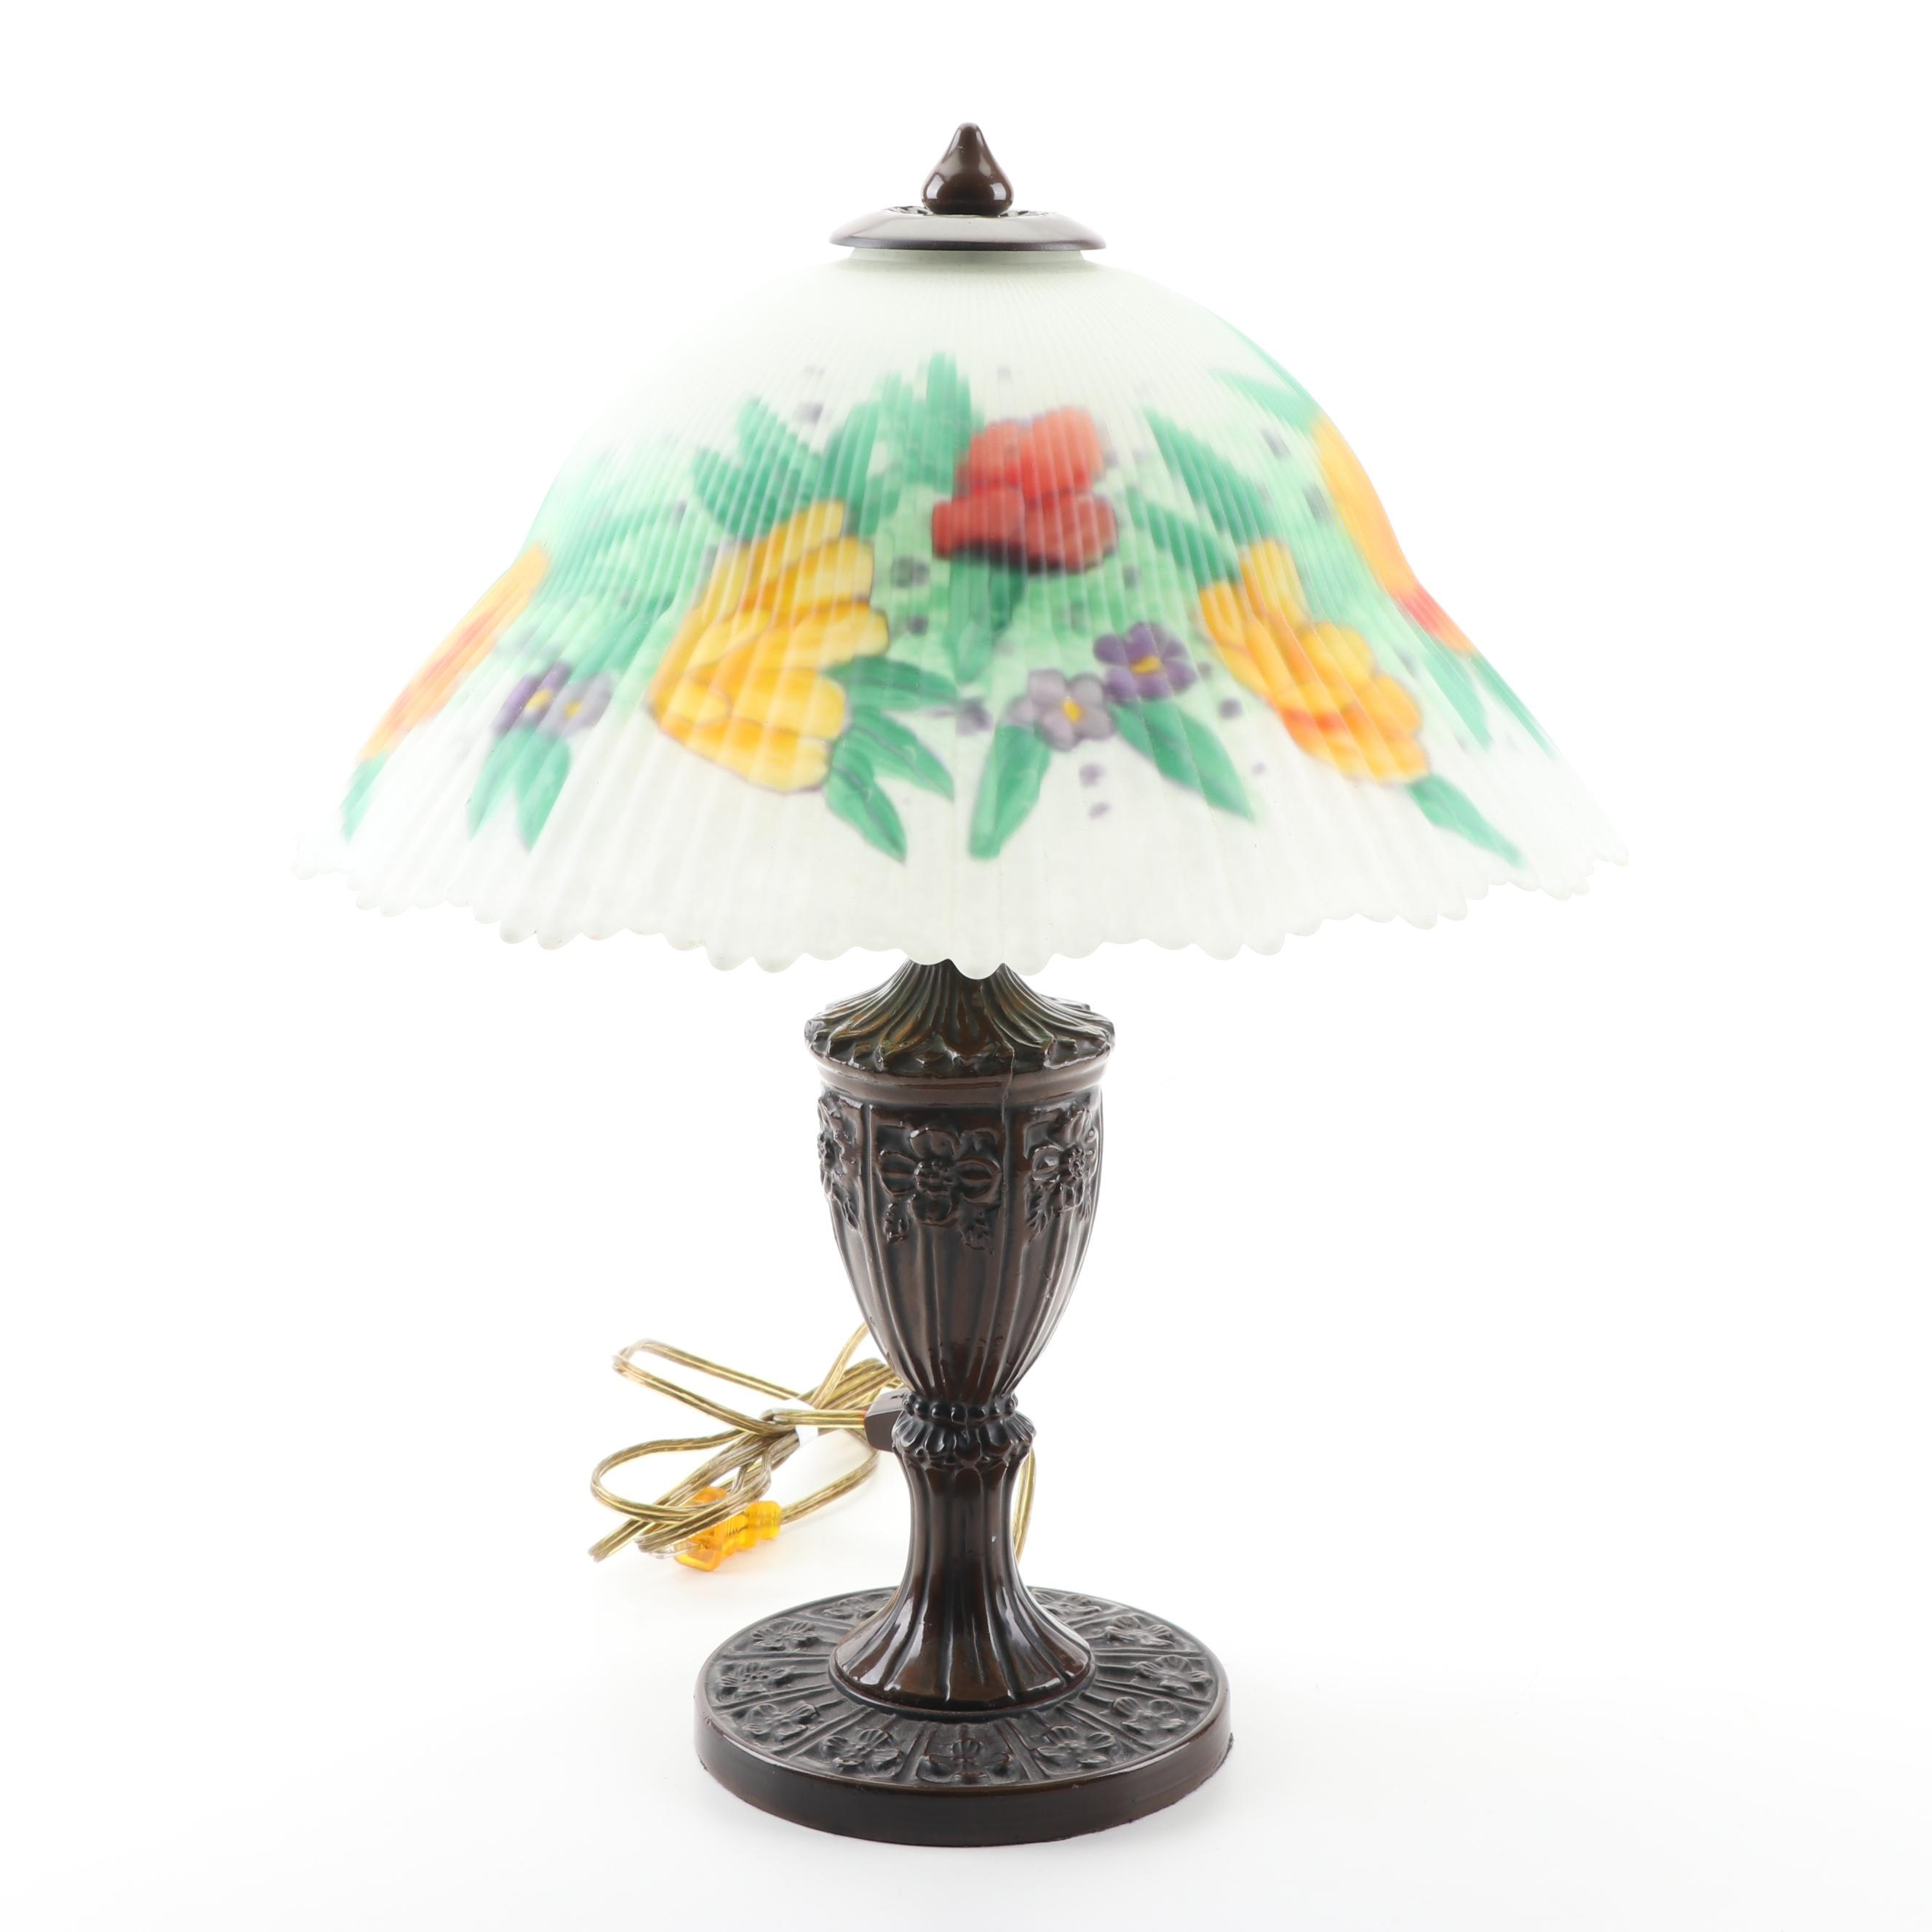 Metal Table Lamp with a Reverse Hand-Painted Glass Shade